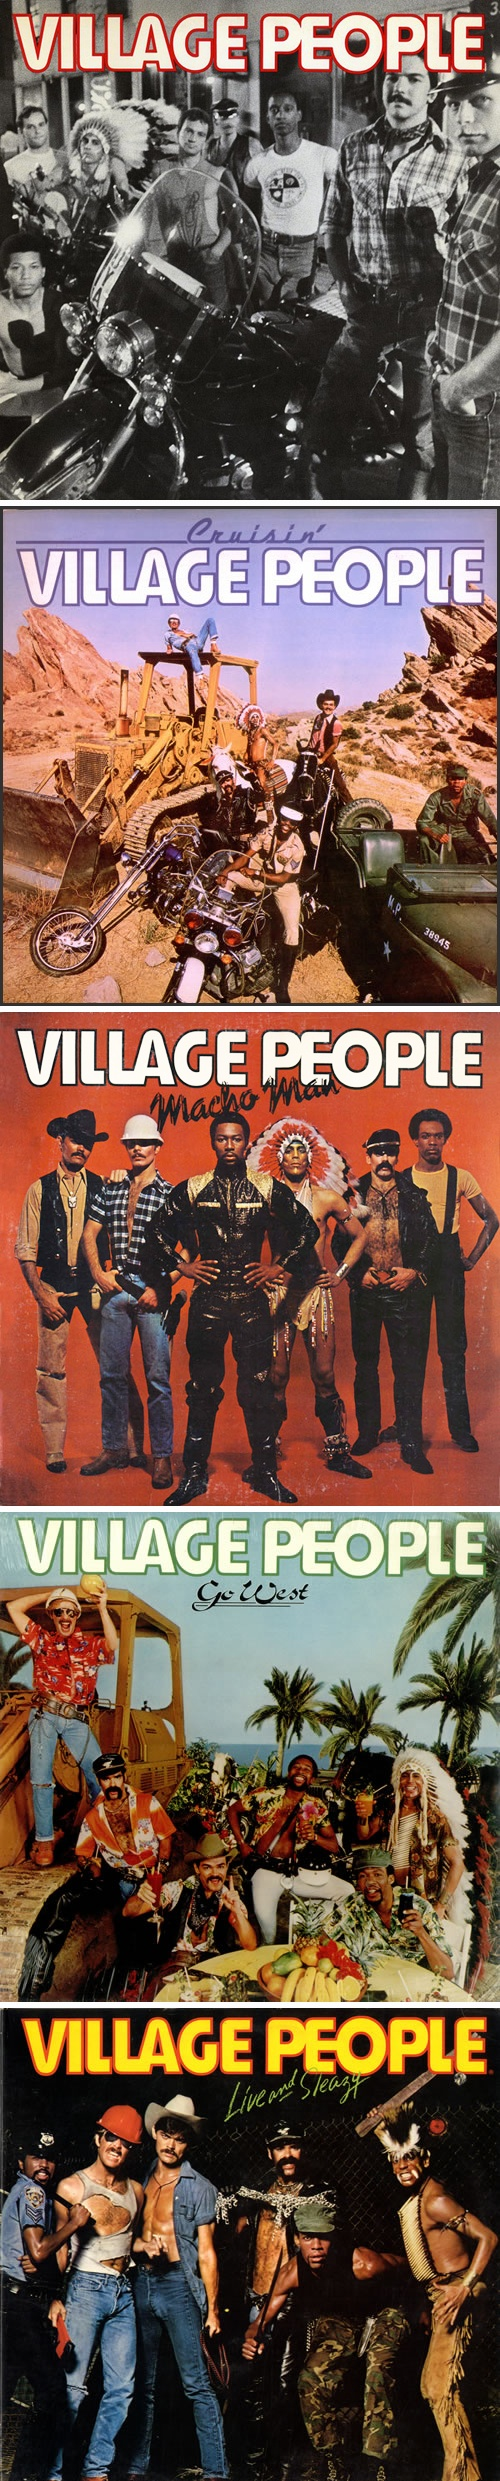 Village People albums: Village People (1977), Cruisin' (1978), Macho Man (1978), Go West (1979), Live And Sleazy (1979)